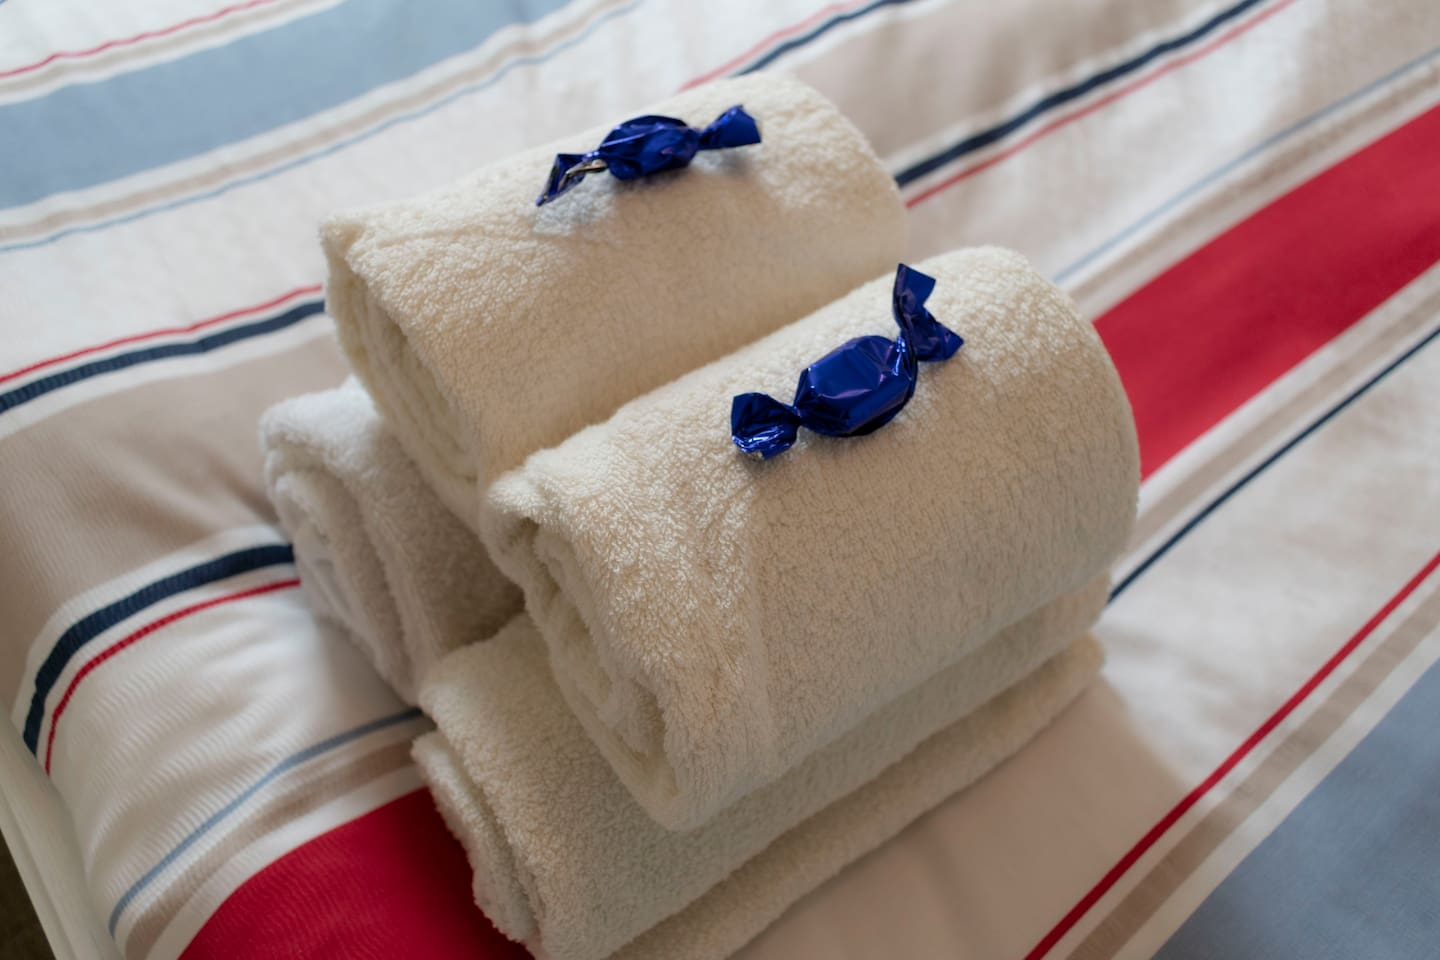 All guests will be provided with clean towels (and a little treat!) for their stay.